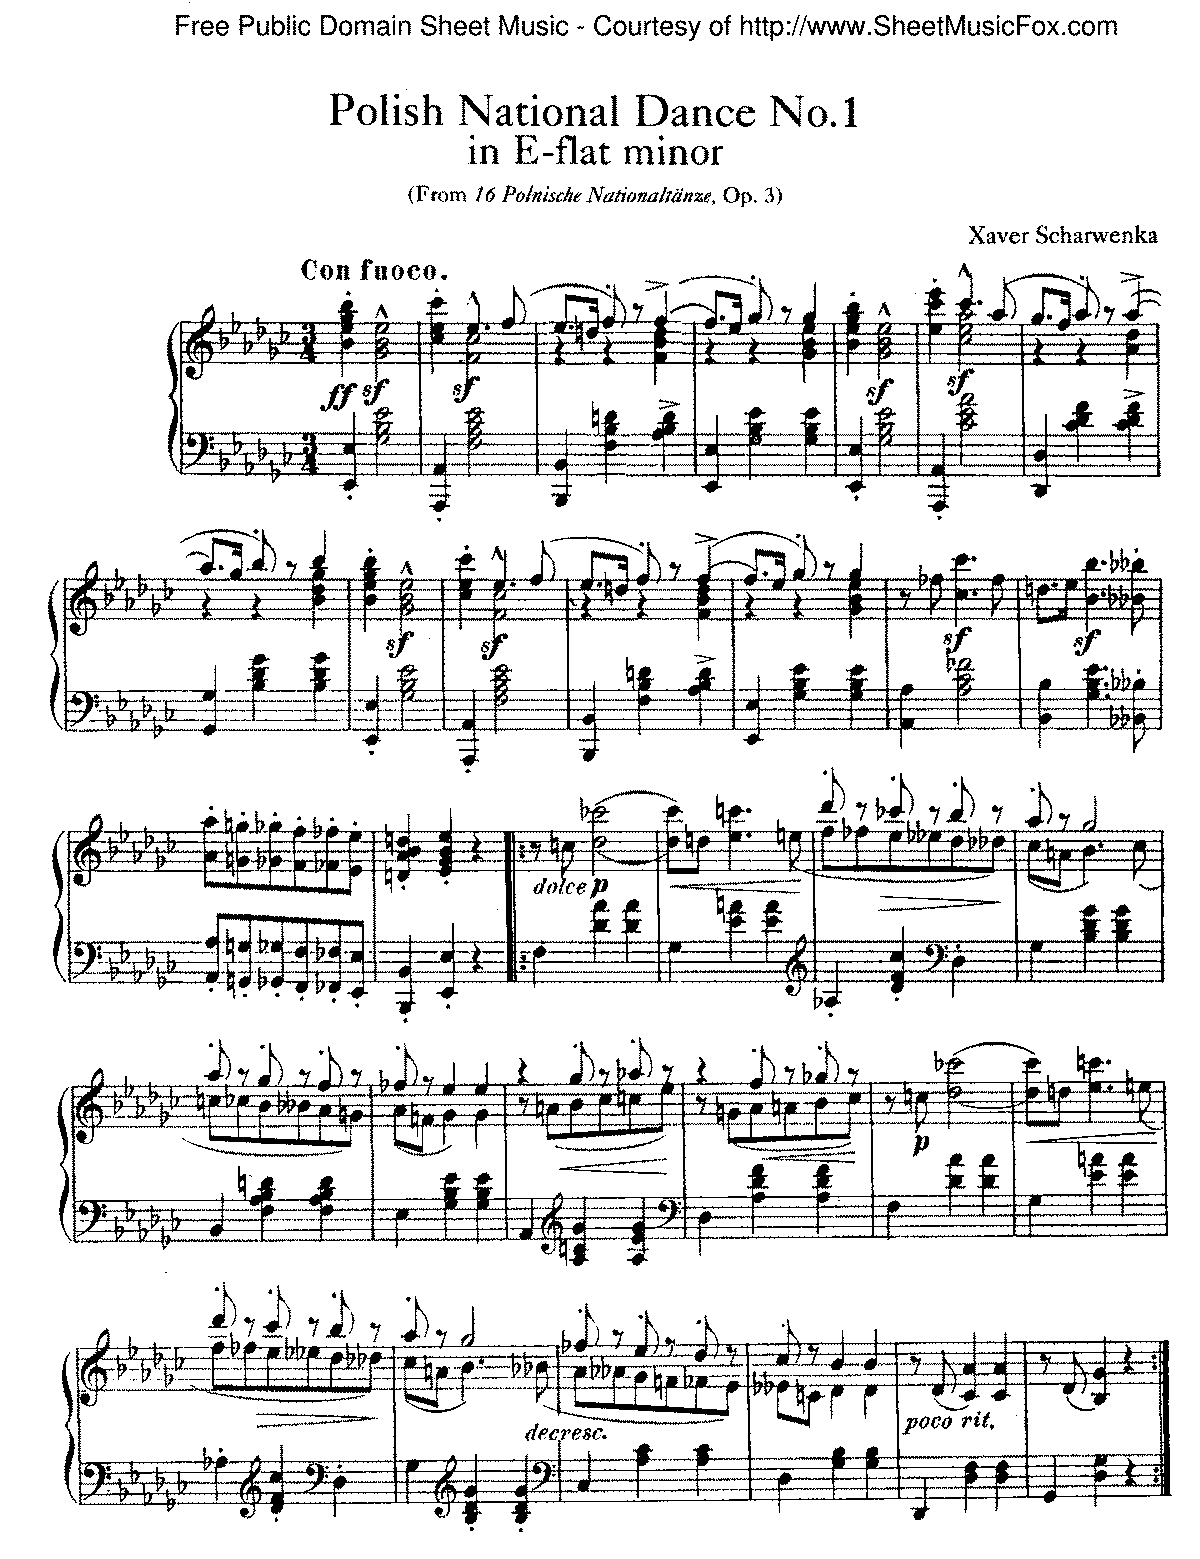 Scharwenka - 16 Polish Dances, Op.3 - No.1.pdf